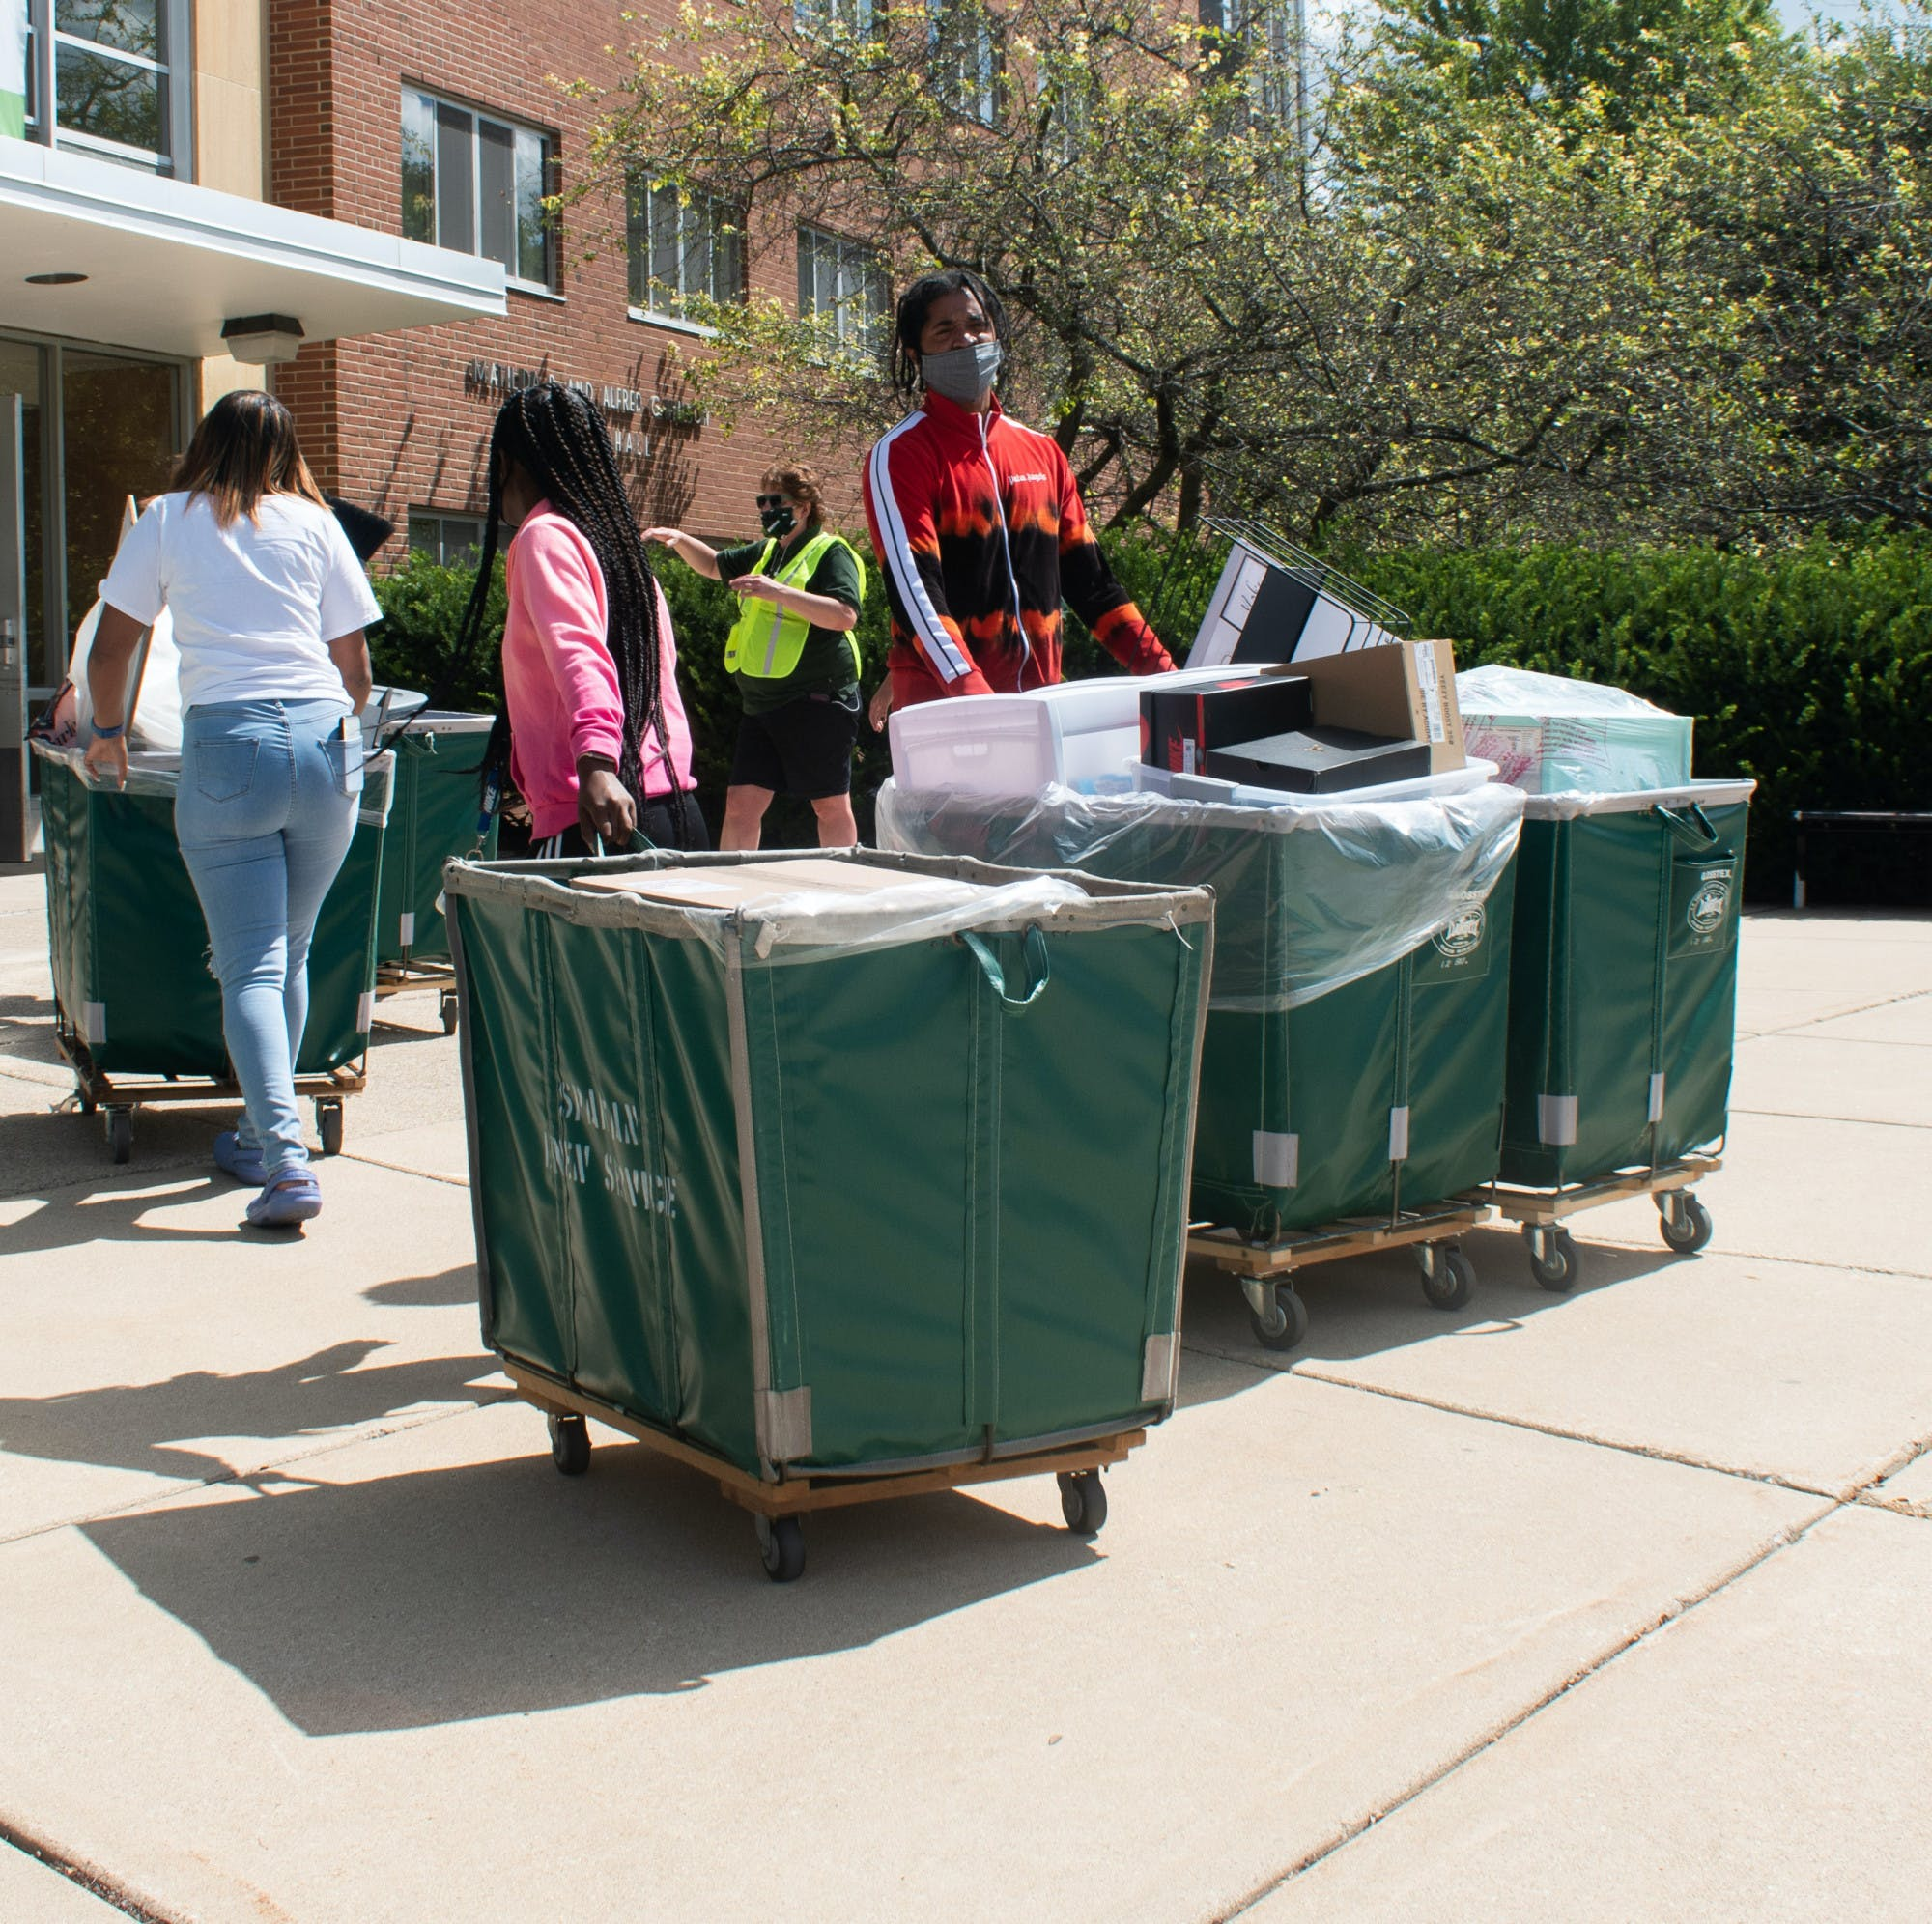 A group of people wearing face masks push and pull large moving bins into a residence hall